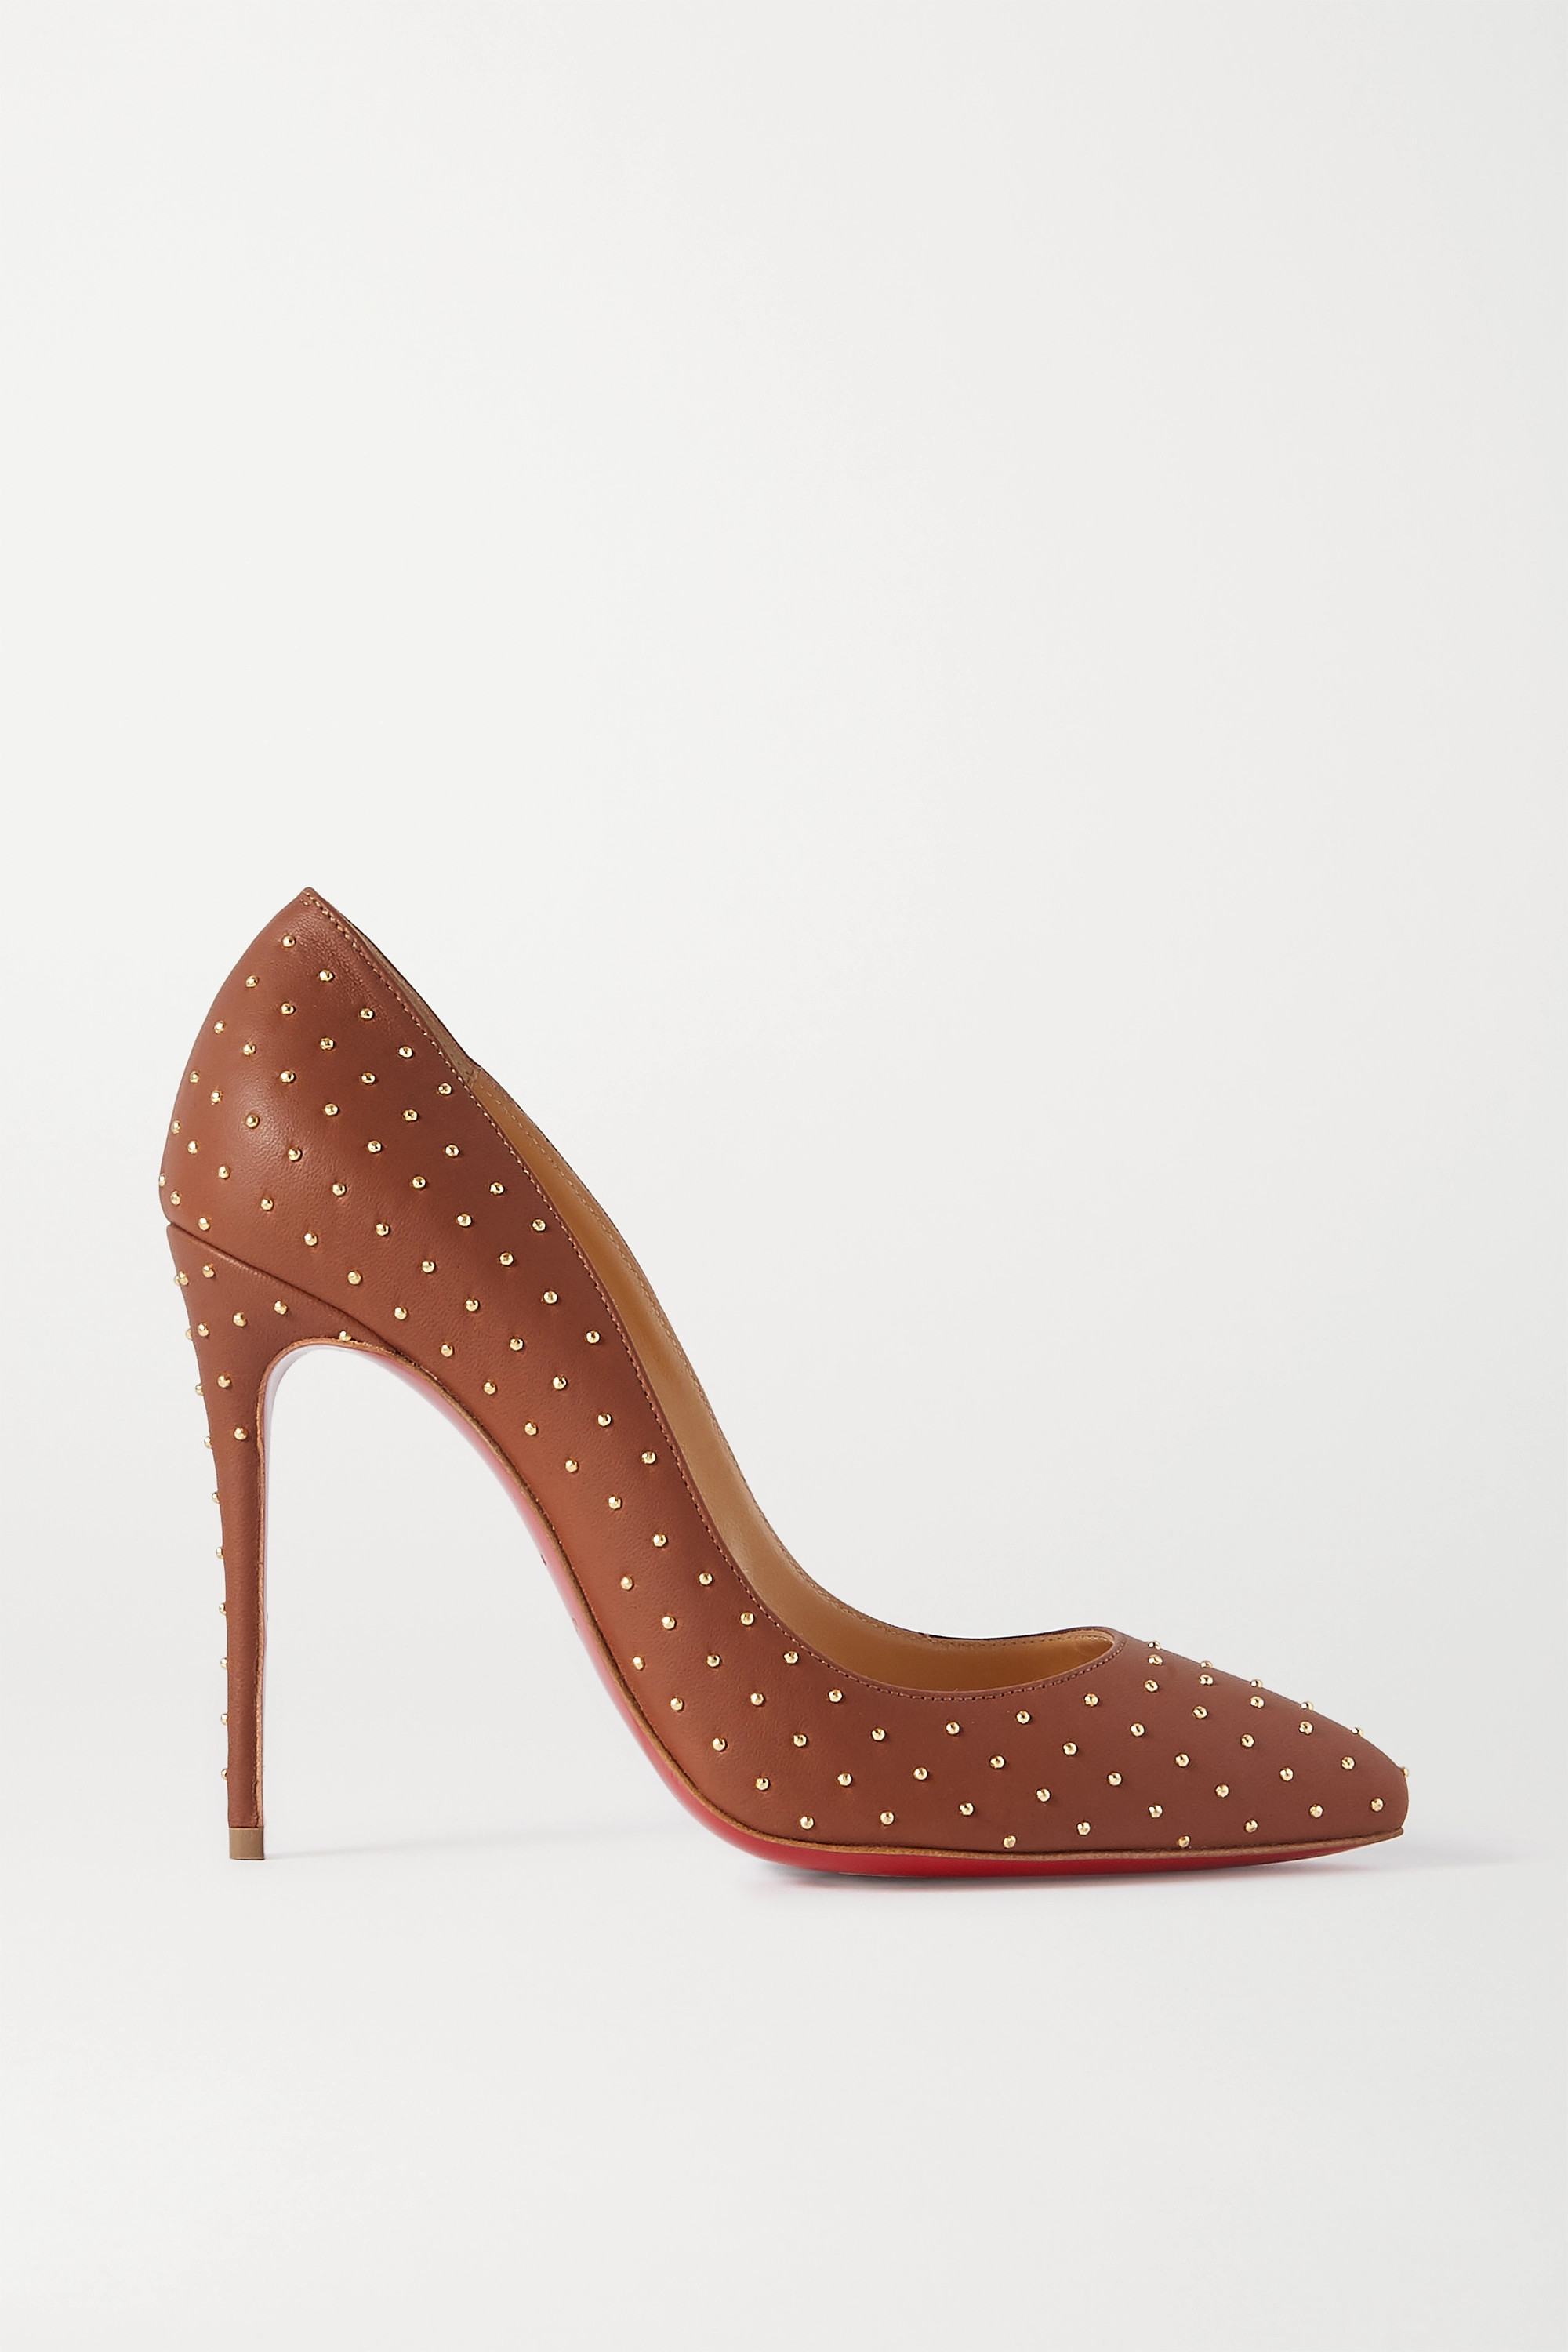 Christian Louboutin Pigalle Follies 100 studded leather pumps